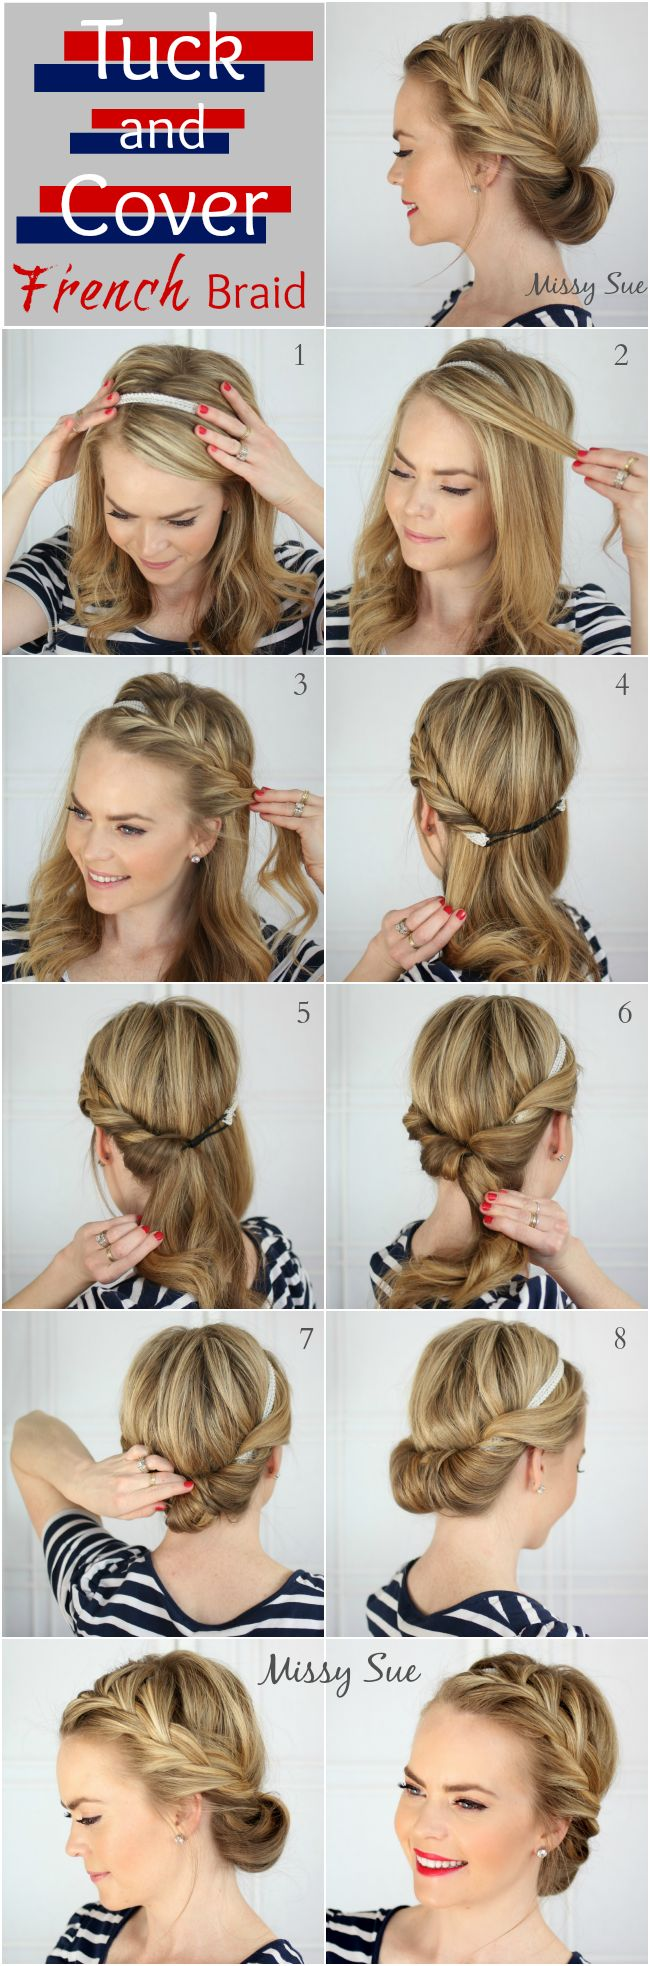 best images about just hairstyles on pinterest her hair updo